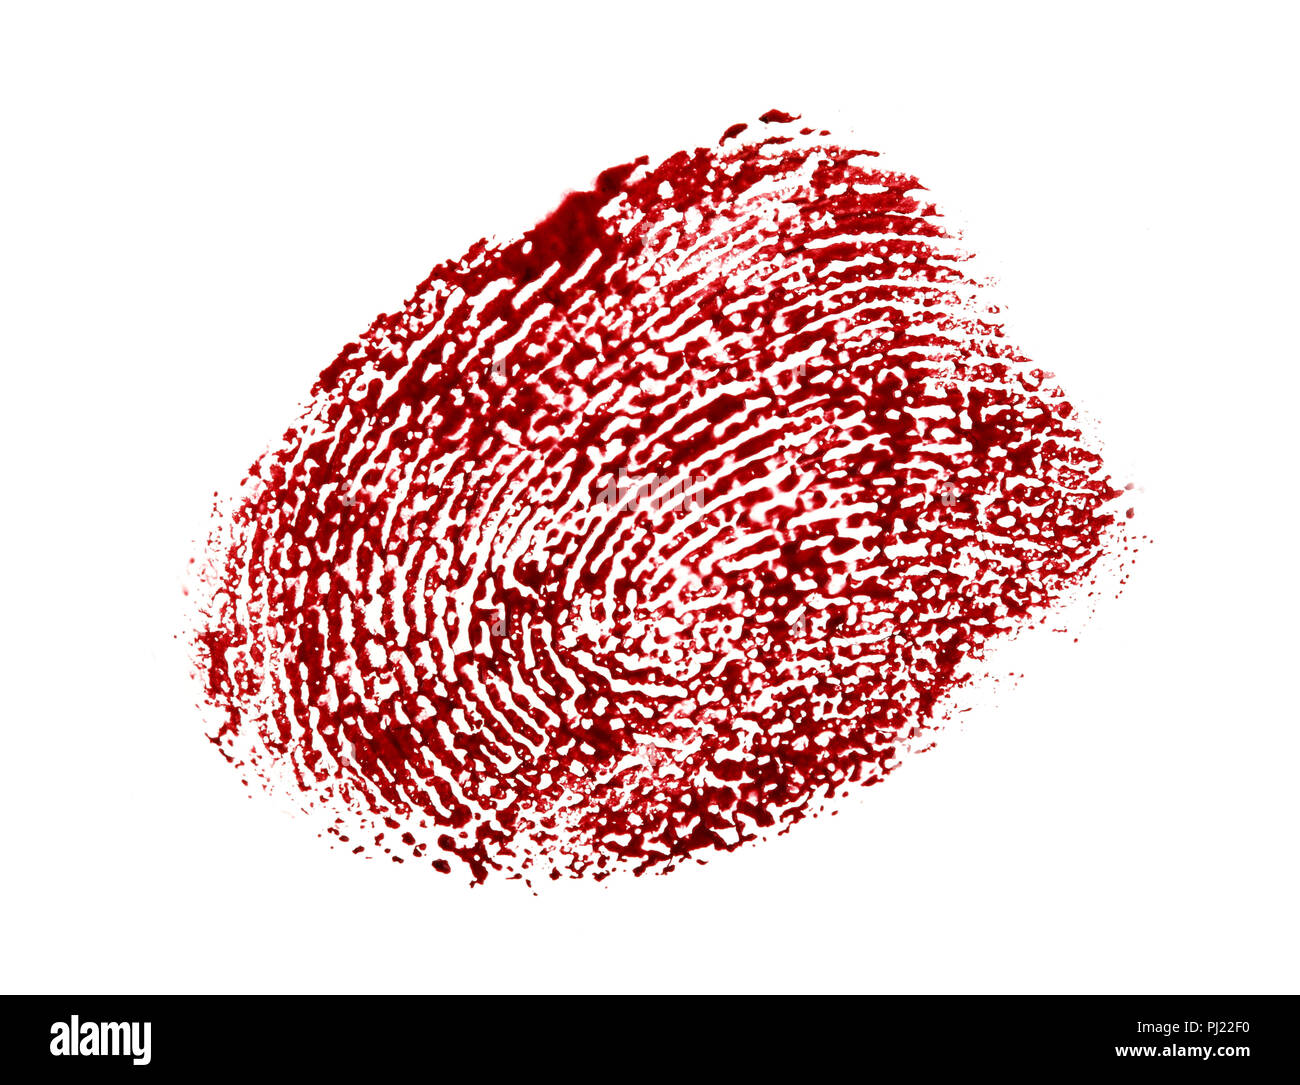 Bloody fingerprint isolated on a white background. - Stock Image